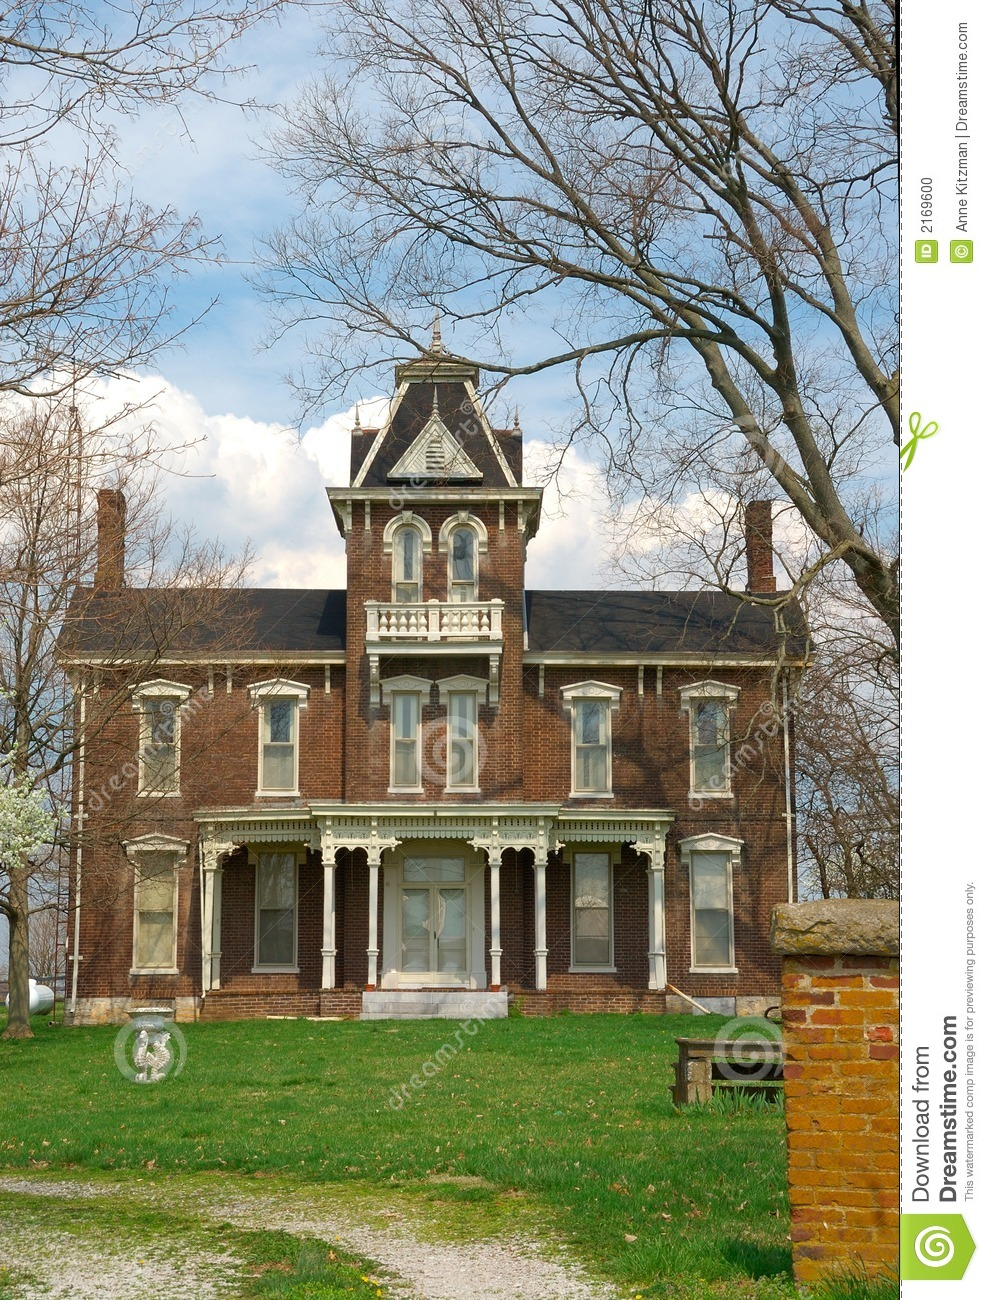 1800s Country Homes: Historic Brick Home 1800s Stock Photo